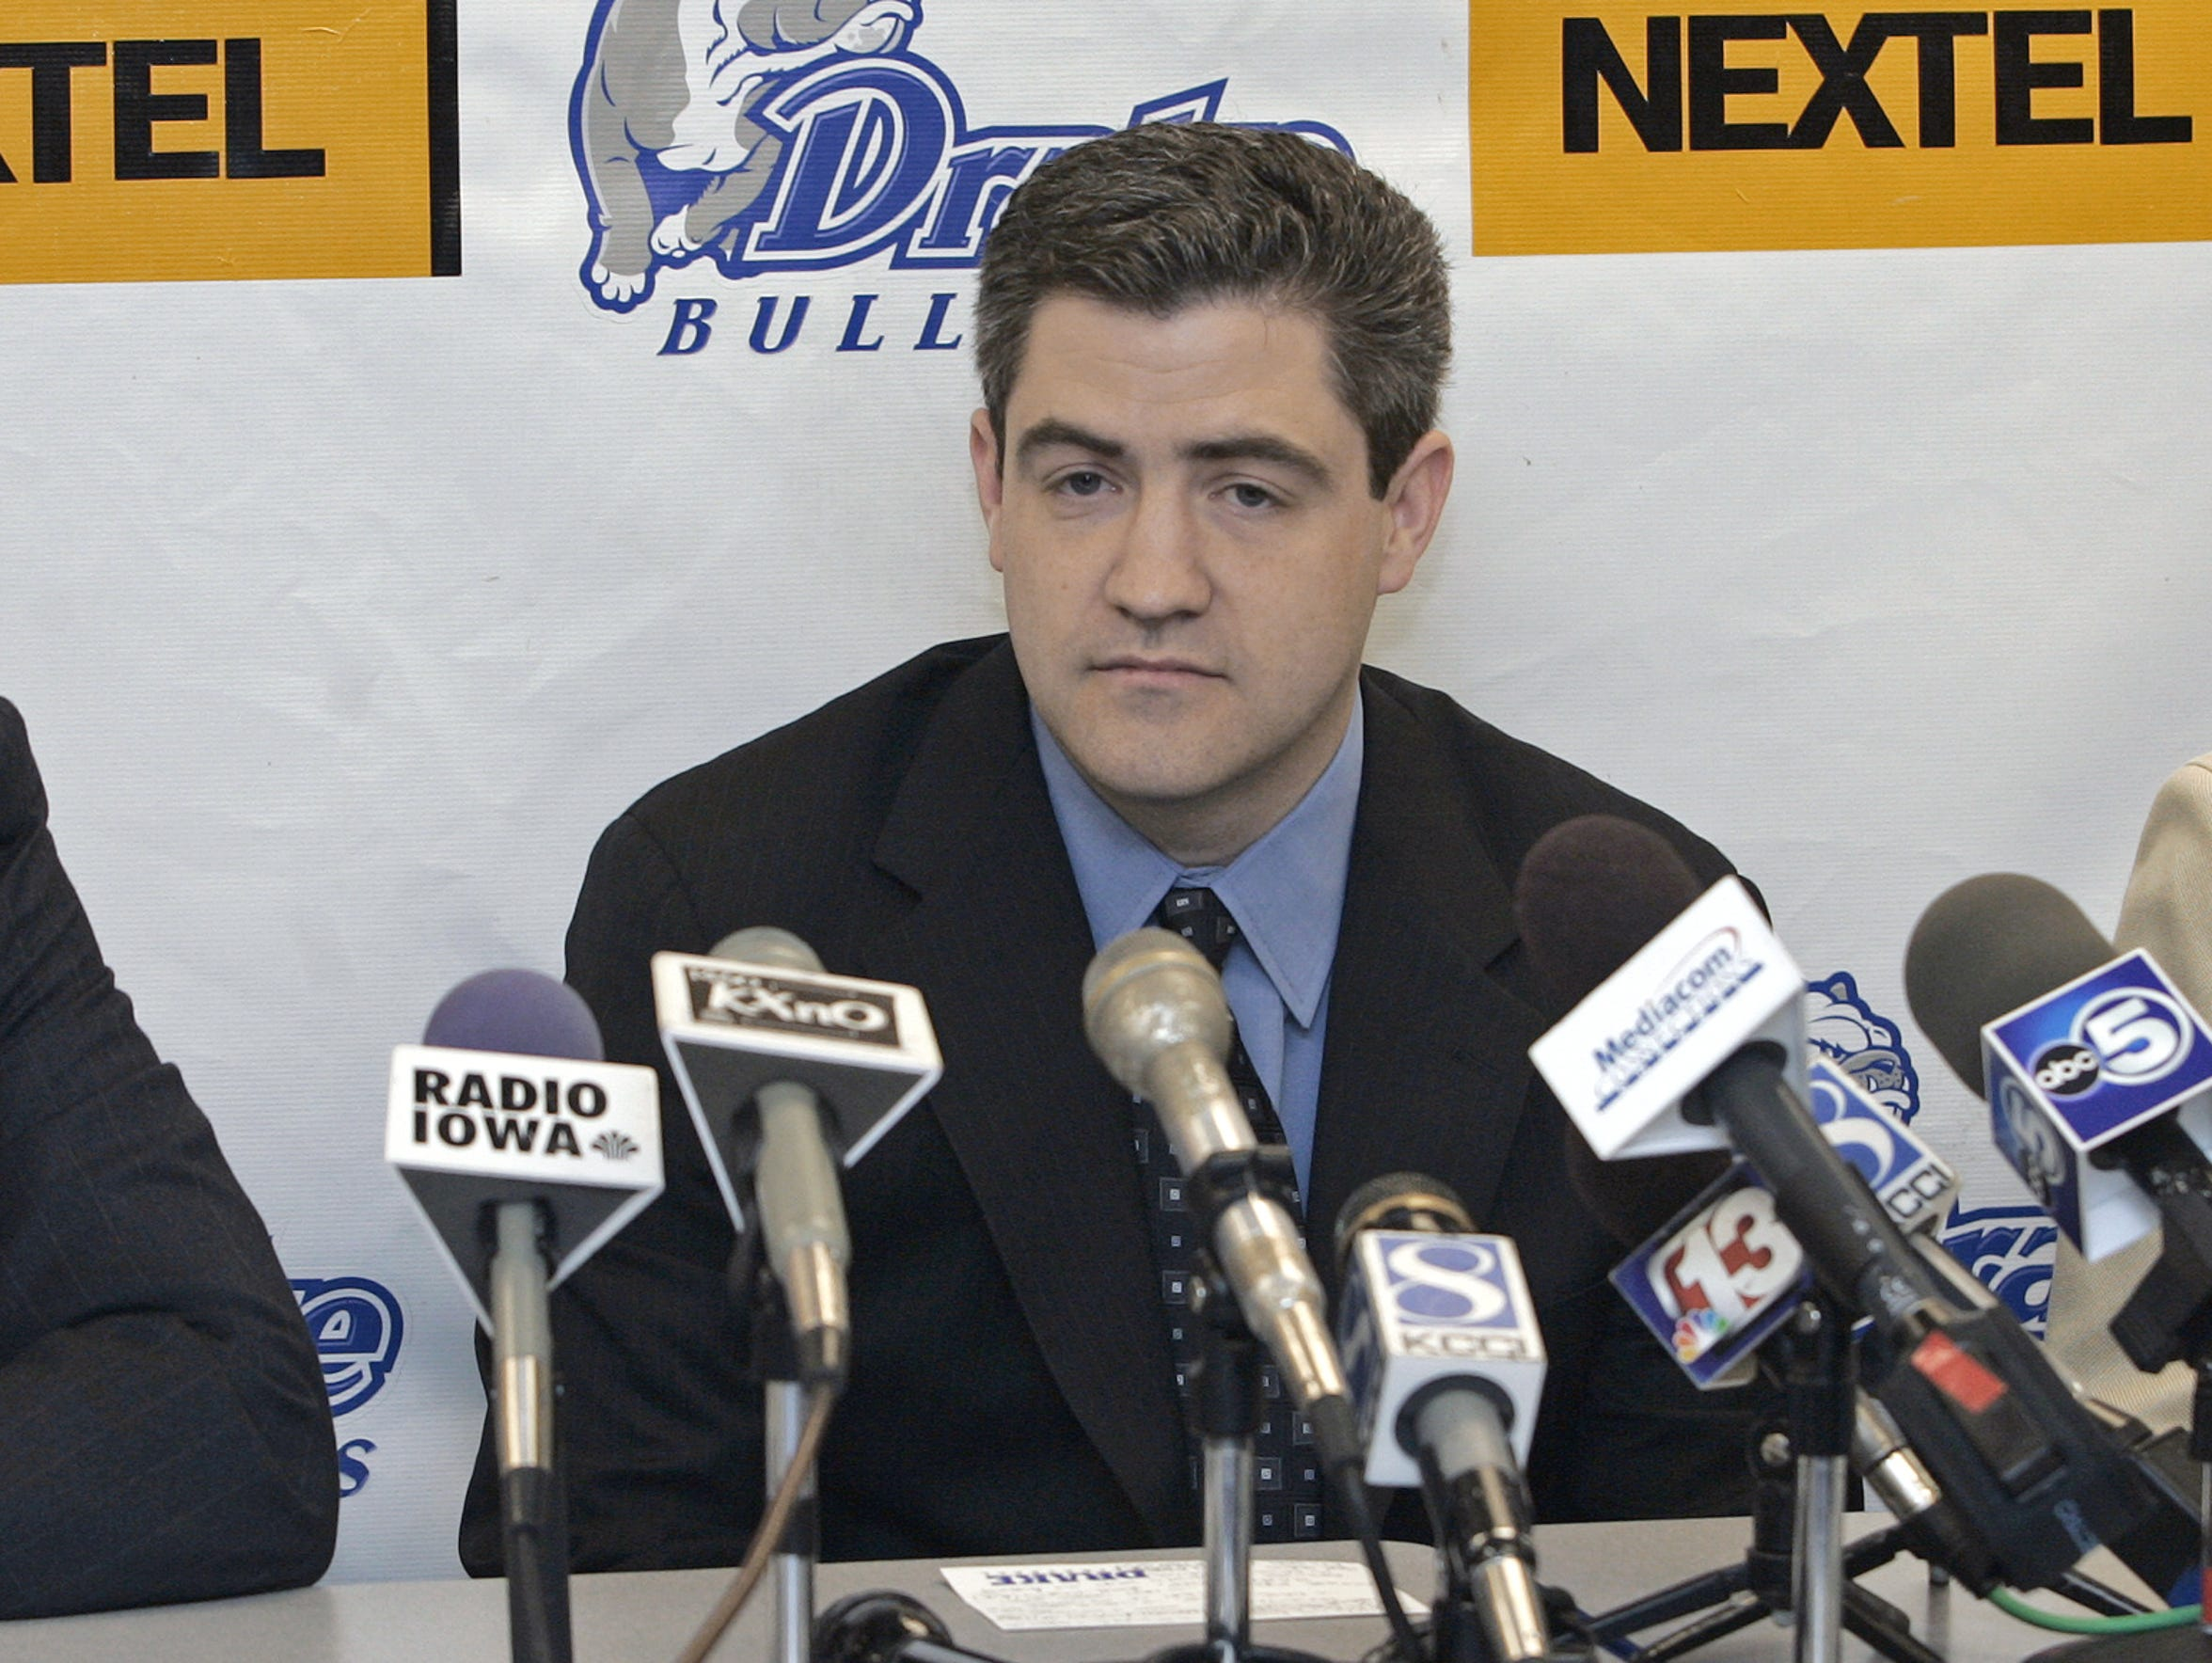 Keno Davis listens as he's announced in March 21, 2007